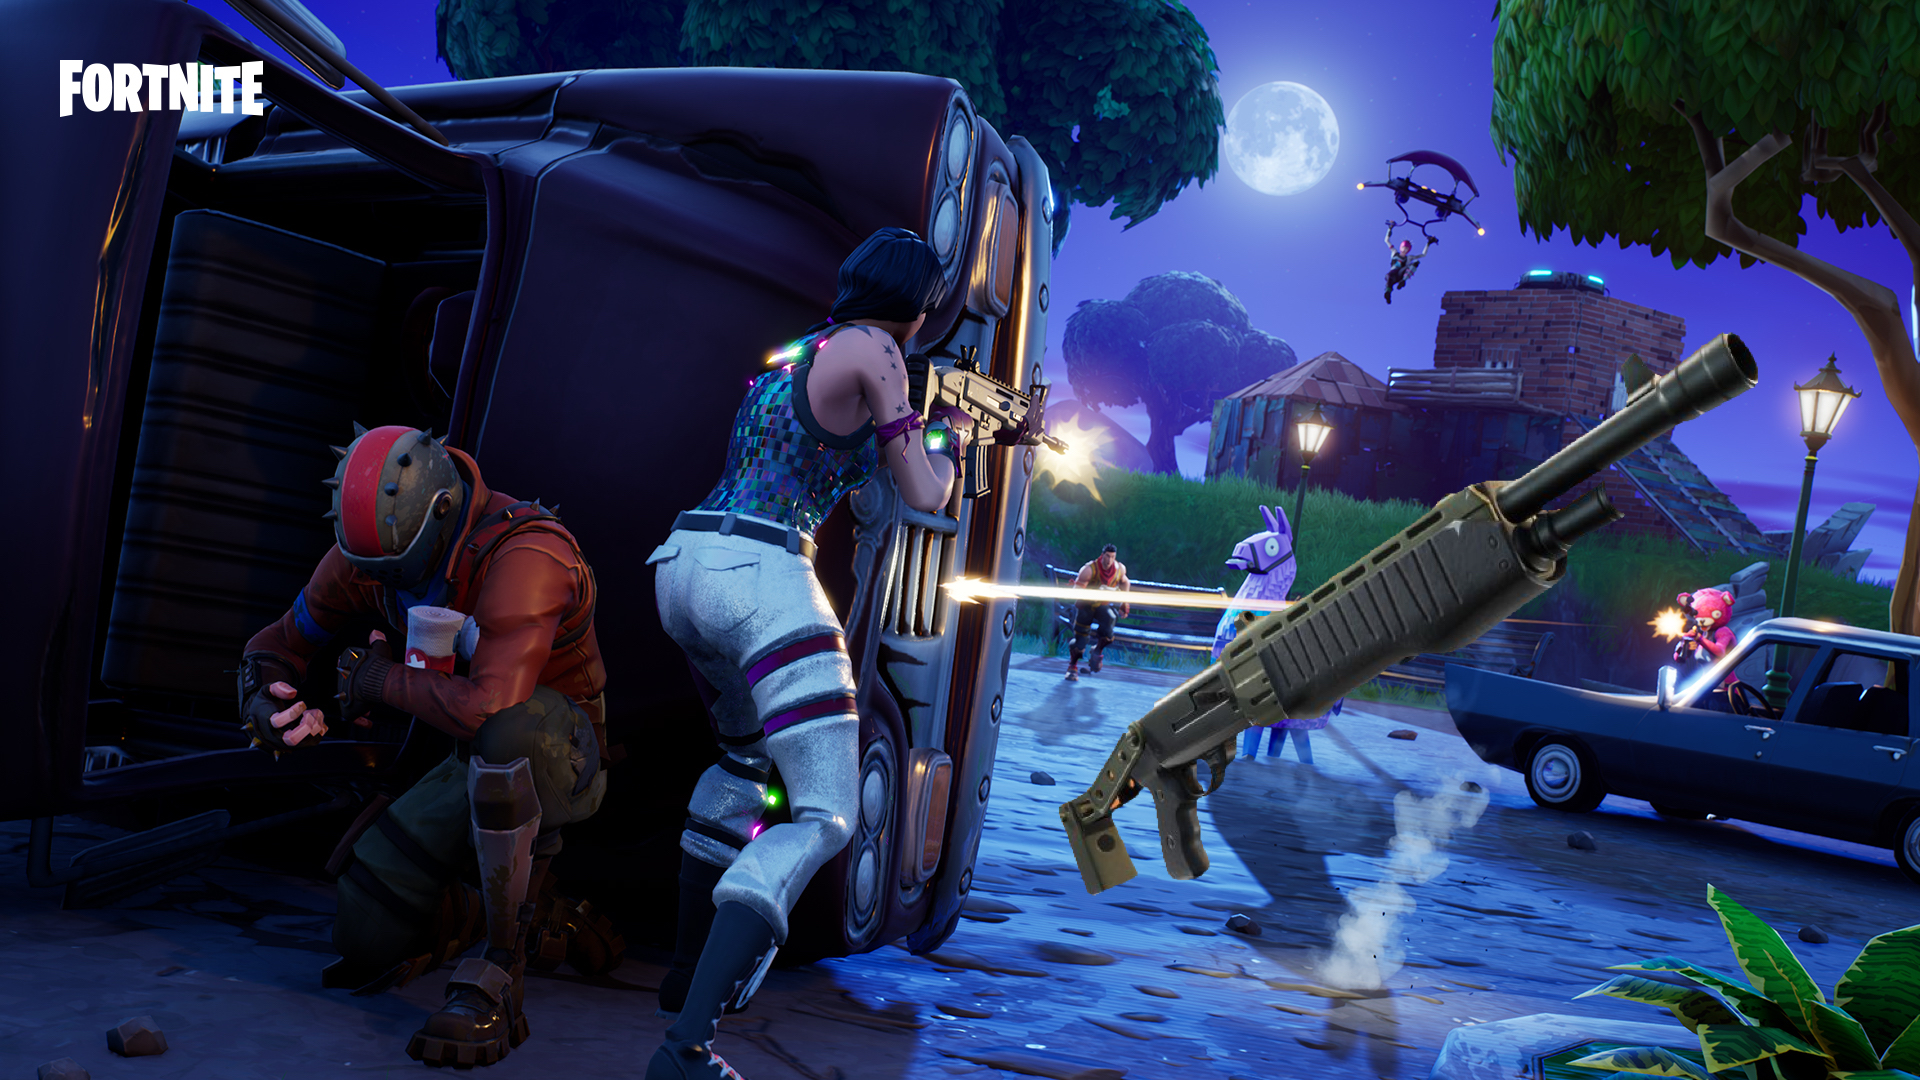 fortnite patch notes 8.20 1